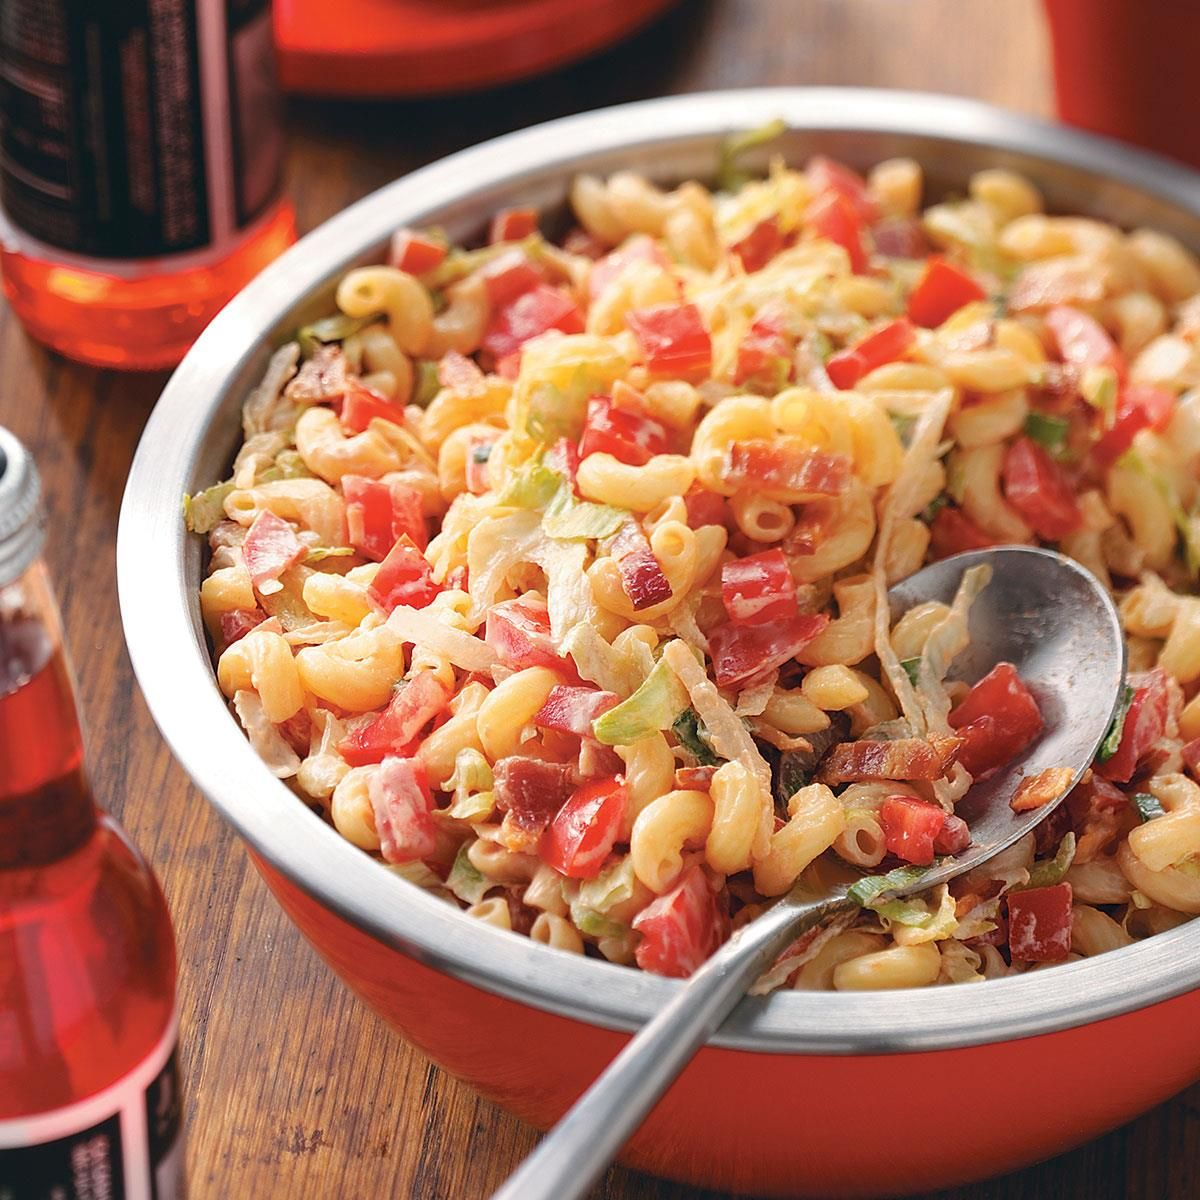 BLT Macaroni Salad Recipe -A friend served this salad, and I just had to get the recipe. My husband loves BLT sandwiches, so this has become a favorite of his. It's nice to serve on hot and humid days, which we frequently get during summer here in Virginia. —Mrs. Hamilton Myers Jr., Charlottesville, Virginia